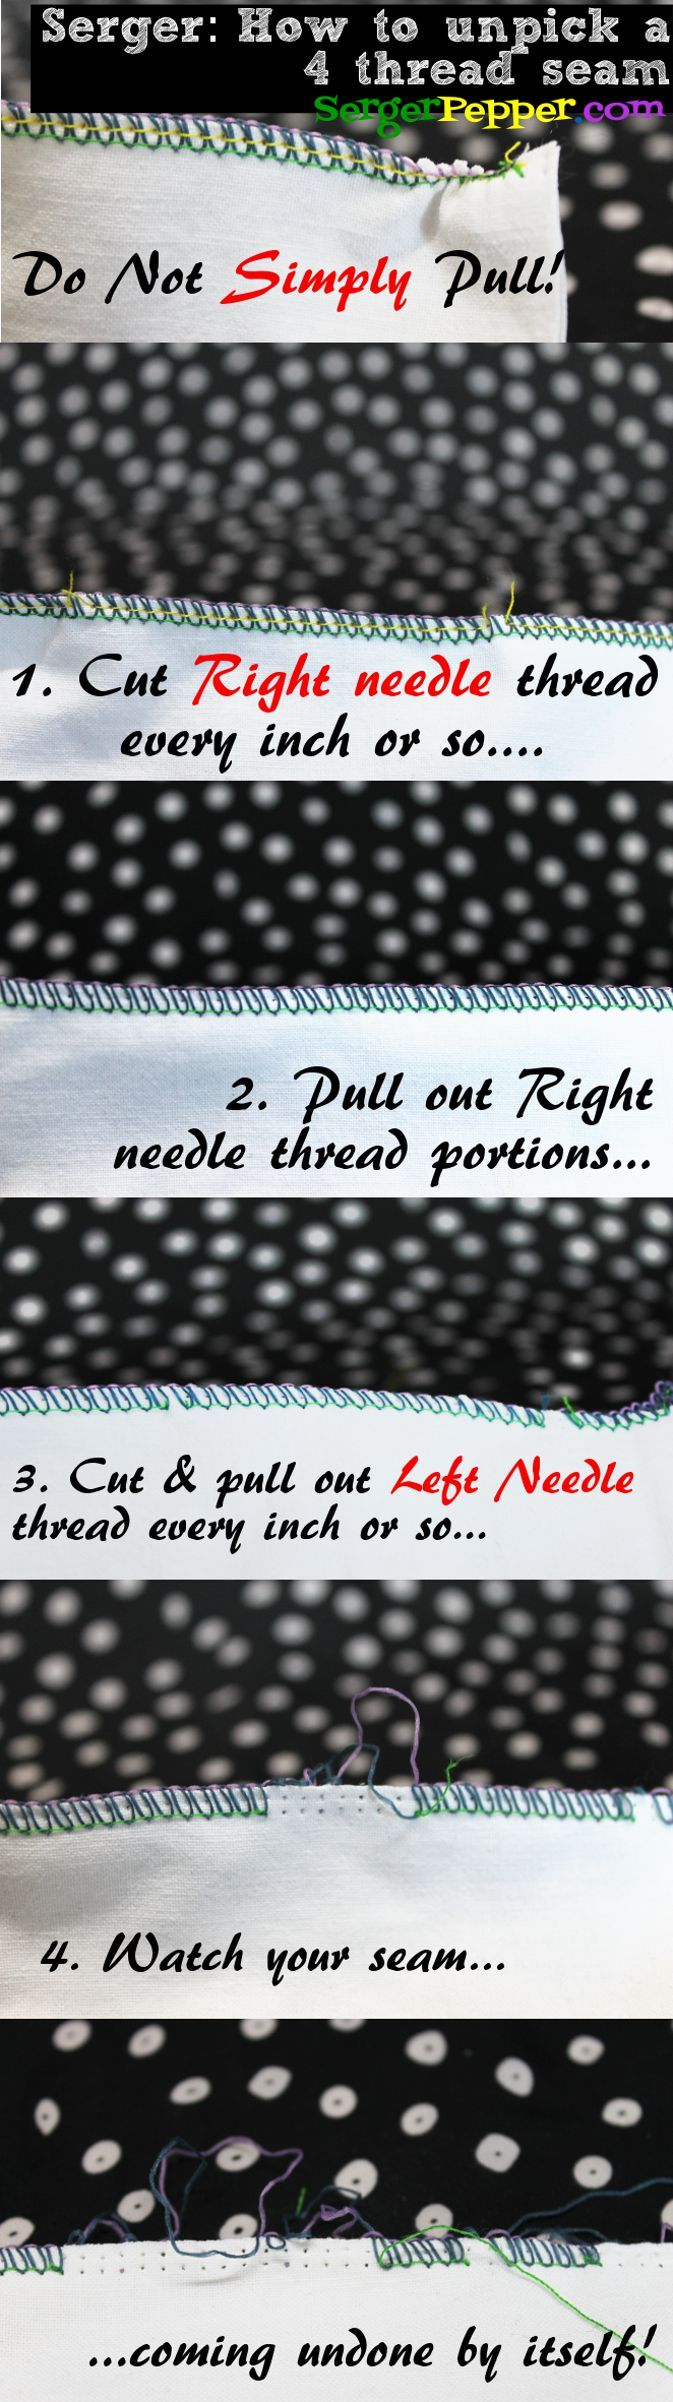 HOT TOPIC! How to unpick a serger seam (3 or 4 thread overlock) the right way! Pin it for future reference ;) And all the pics of a 4 thread seam with wrong tensions and HOw-TO FIX THEM! On SergerPepper.com